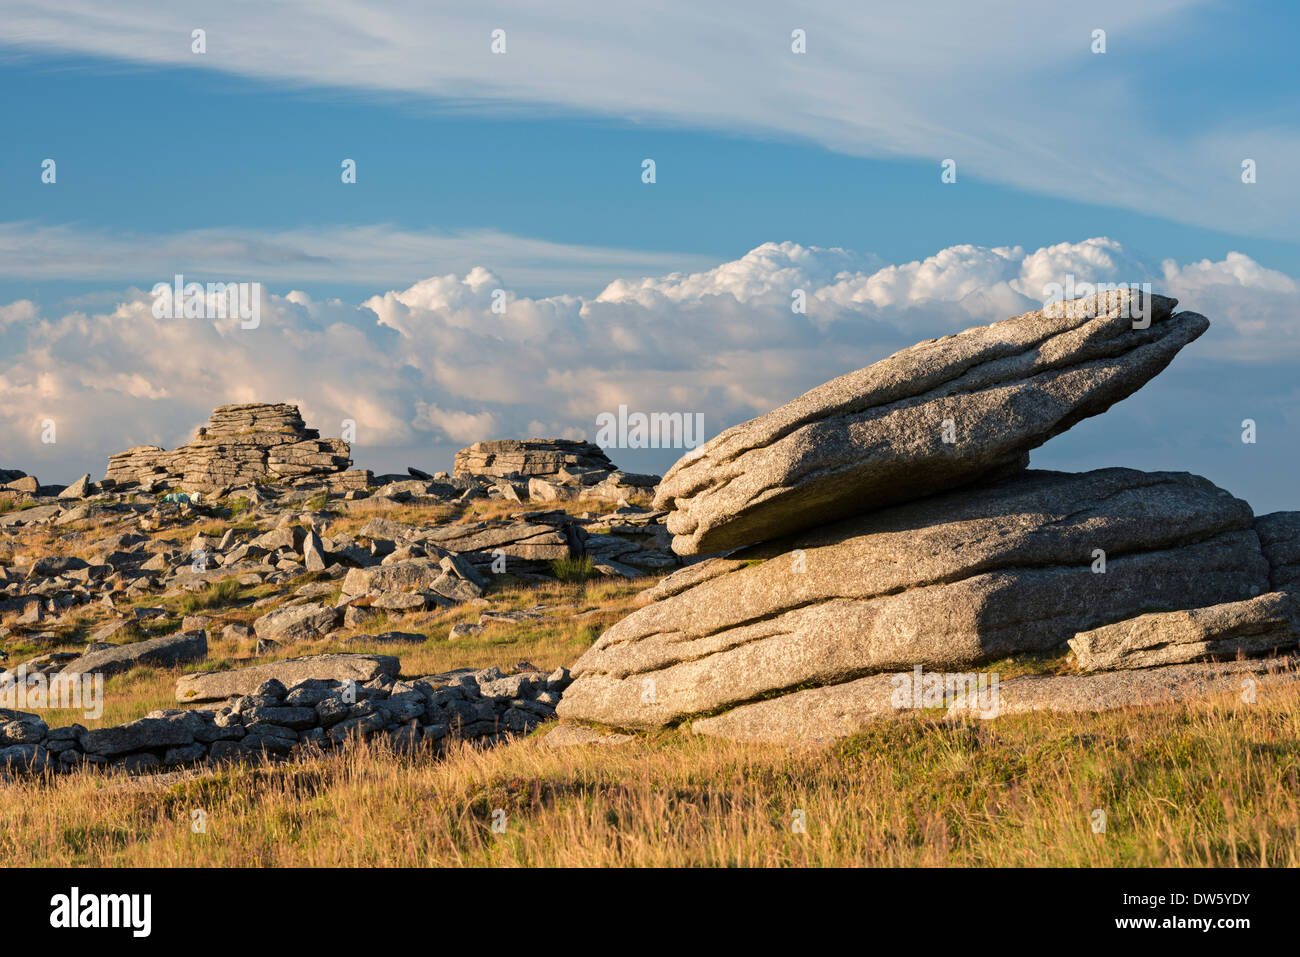 Granite outcrops at Higher Tor in Dartmoor National Park, Devon, England. Summer (July) 2013. - Stock Image